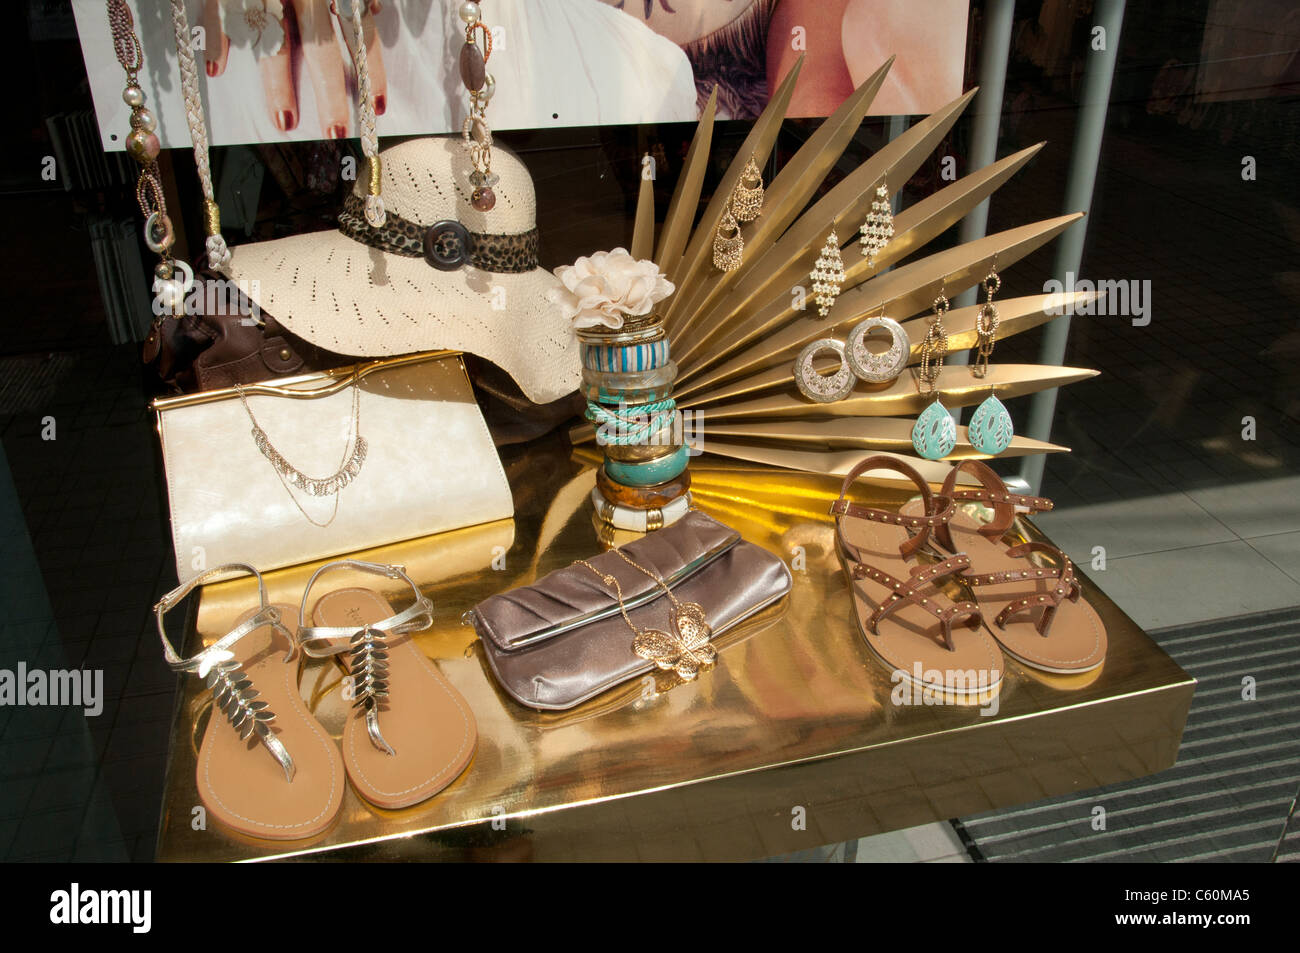 Istanbul Trendy Fashion shoes bags boutique Turkey - Stock Image